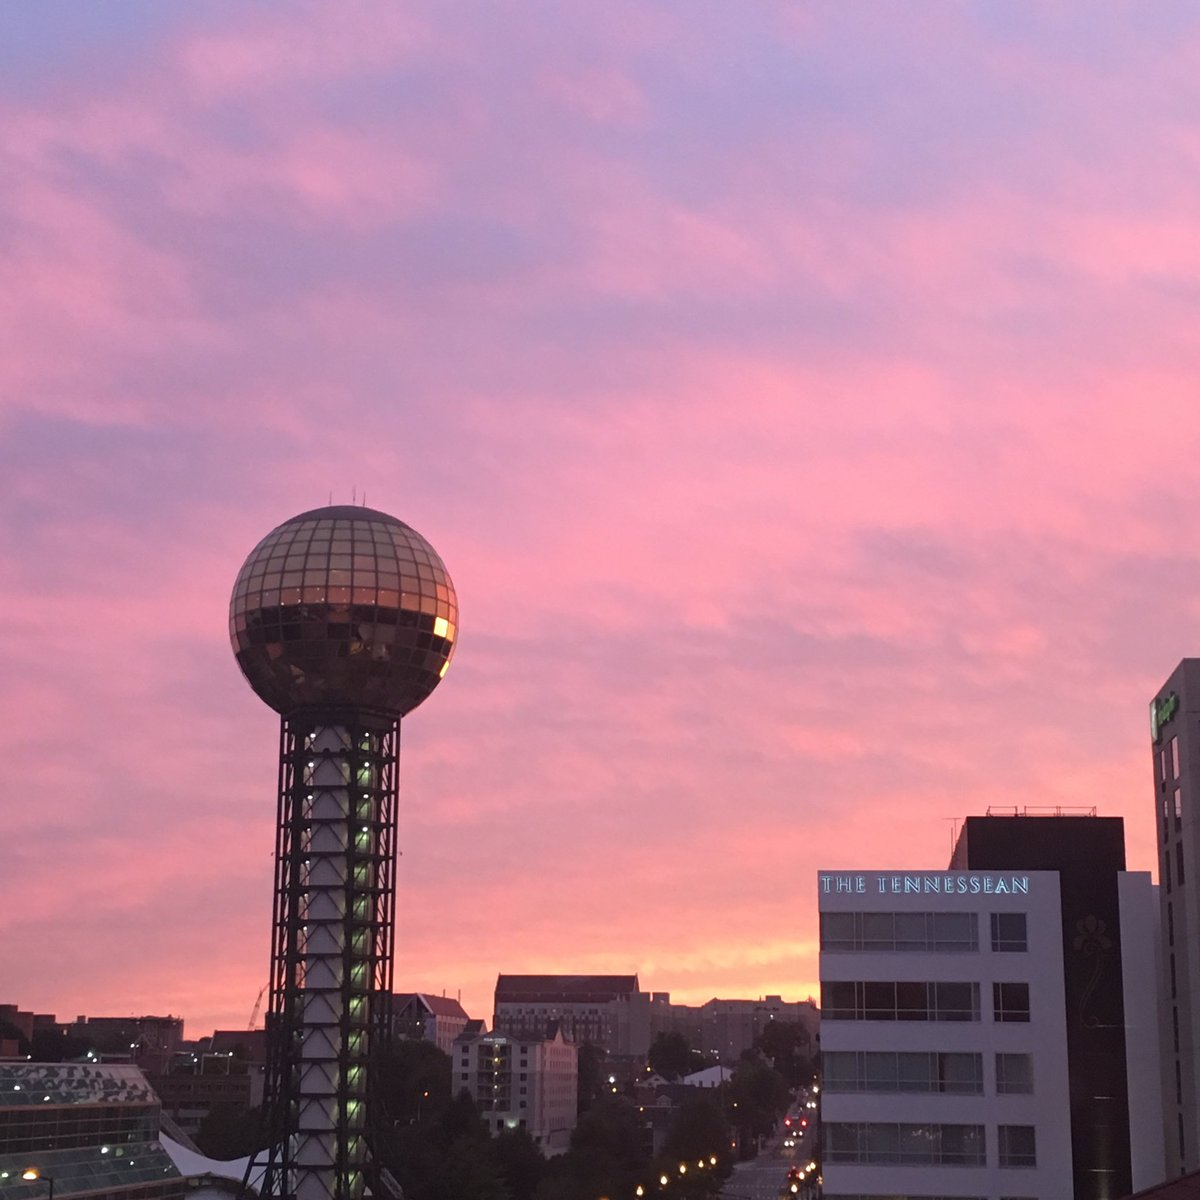 Sunset did not disappoint! #lovedowntownknox https://t.co/SzVfupuWTK